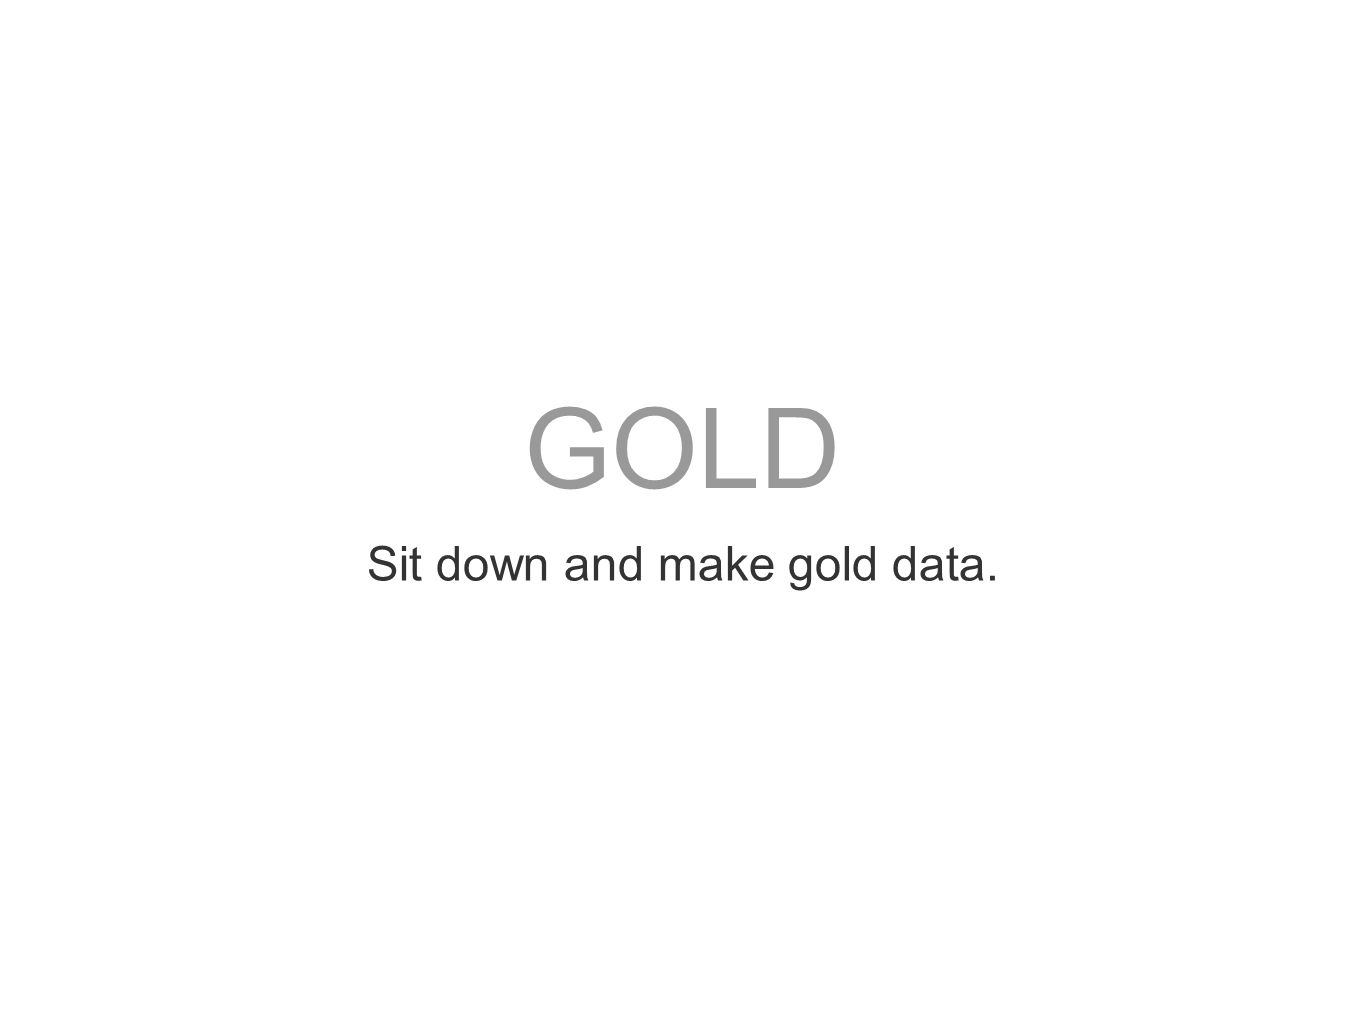 GOLD Sit down and make gold data.